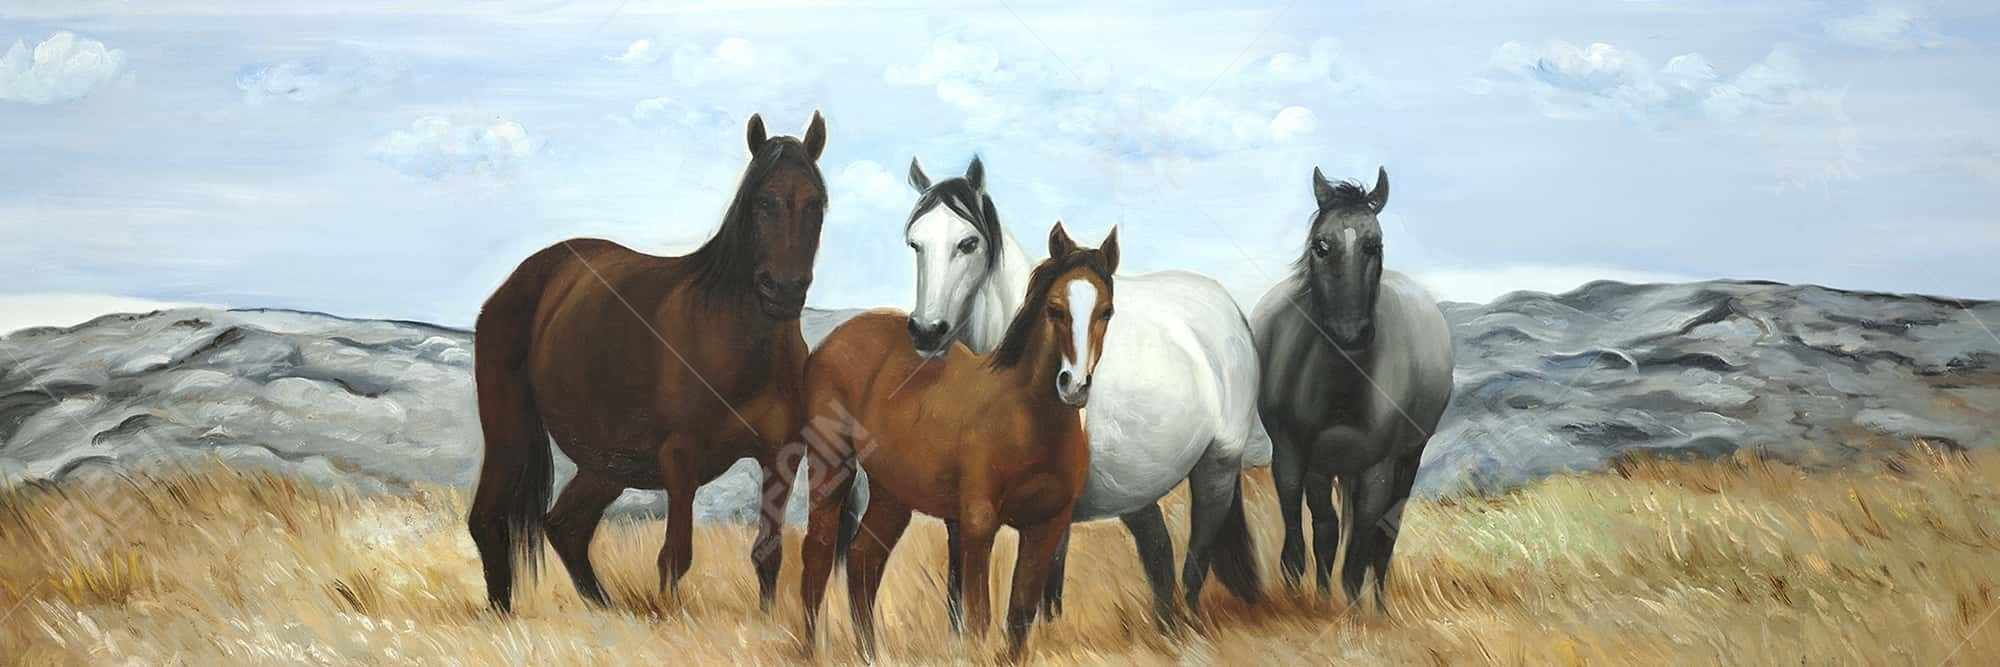 Horses in the meadow by the sun